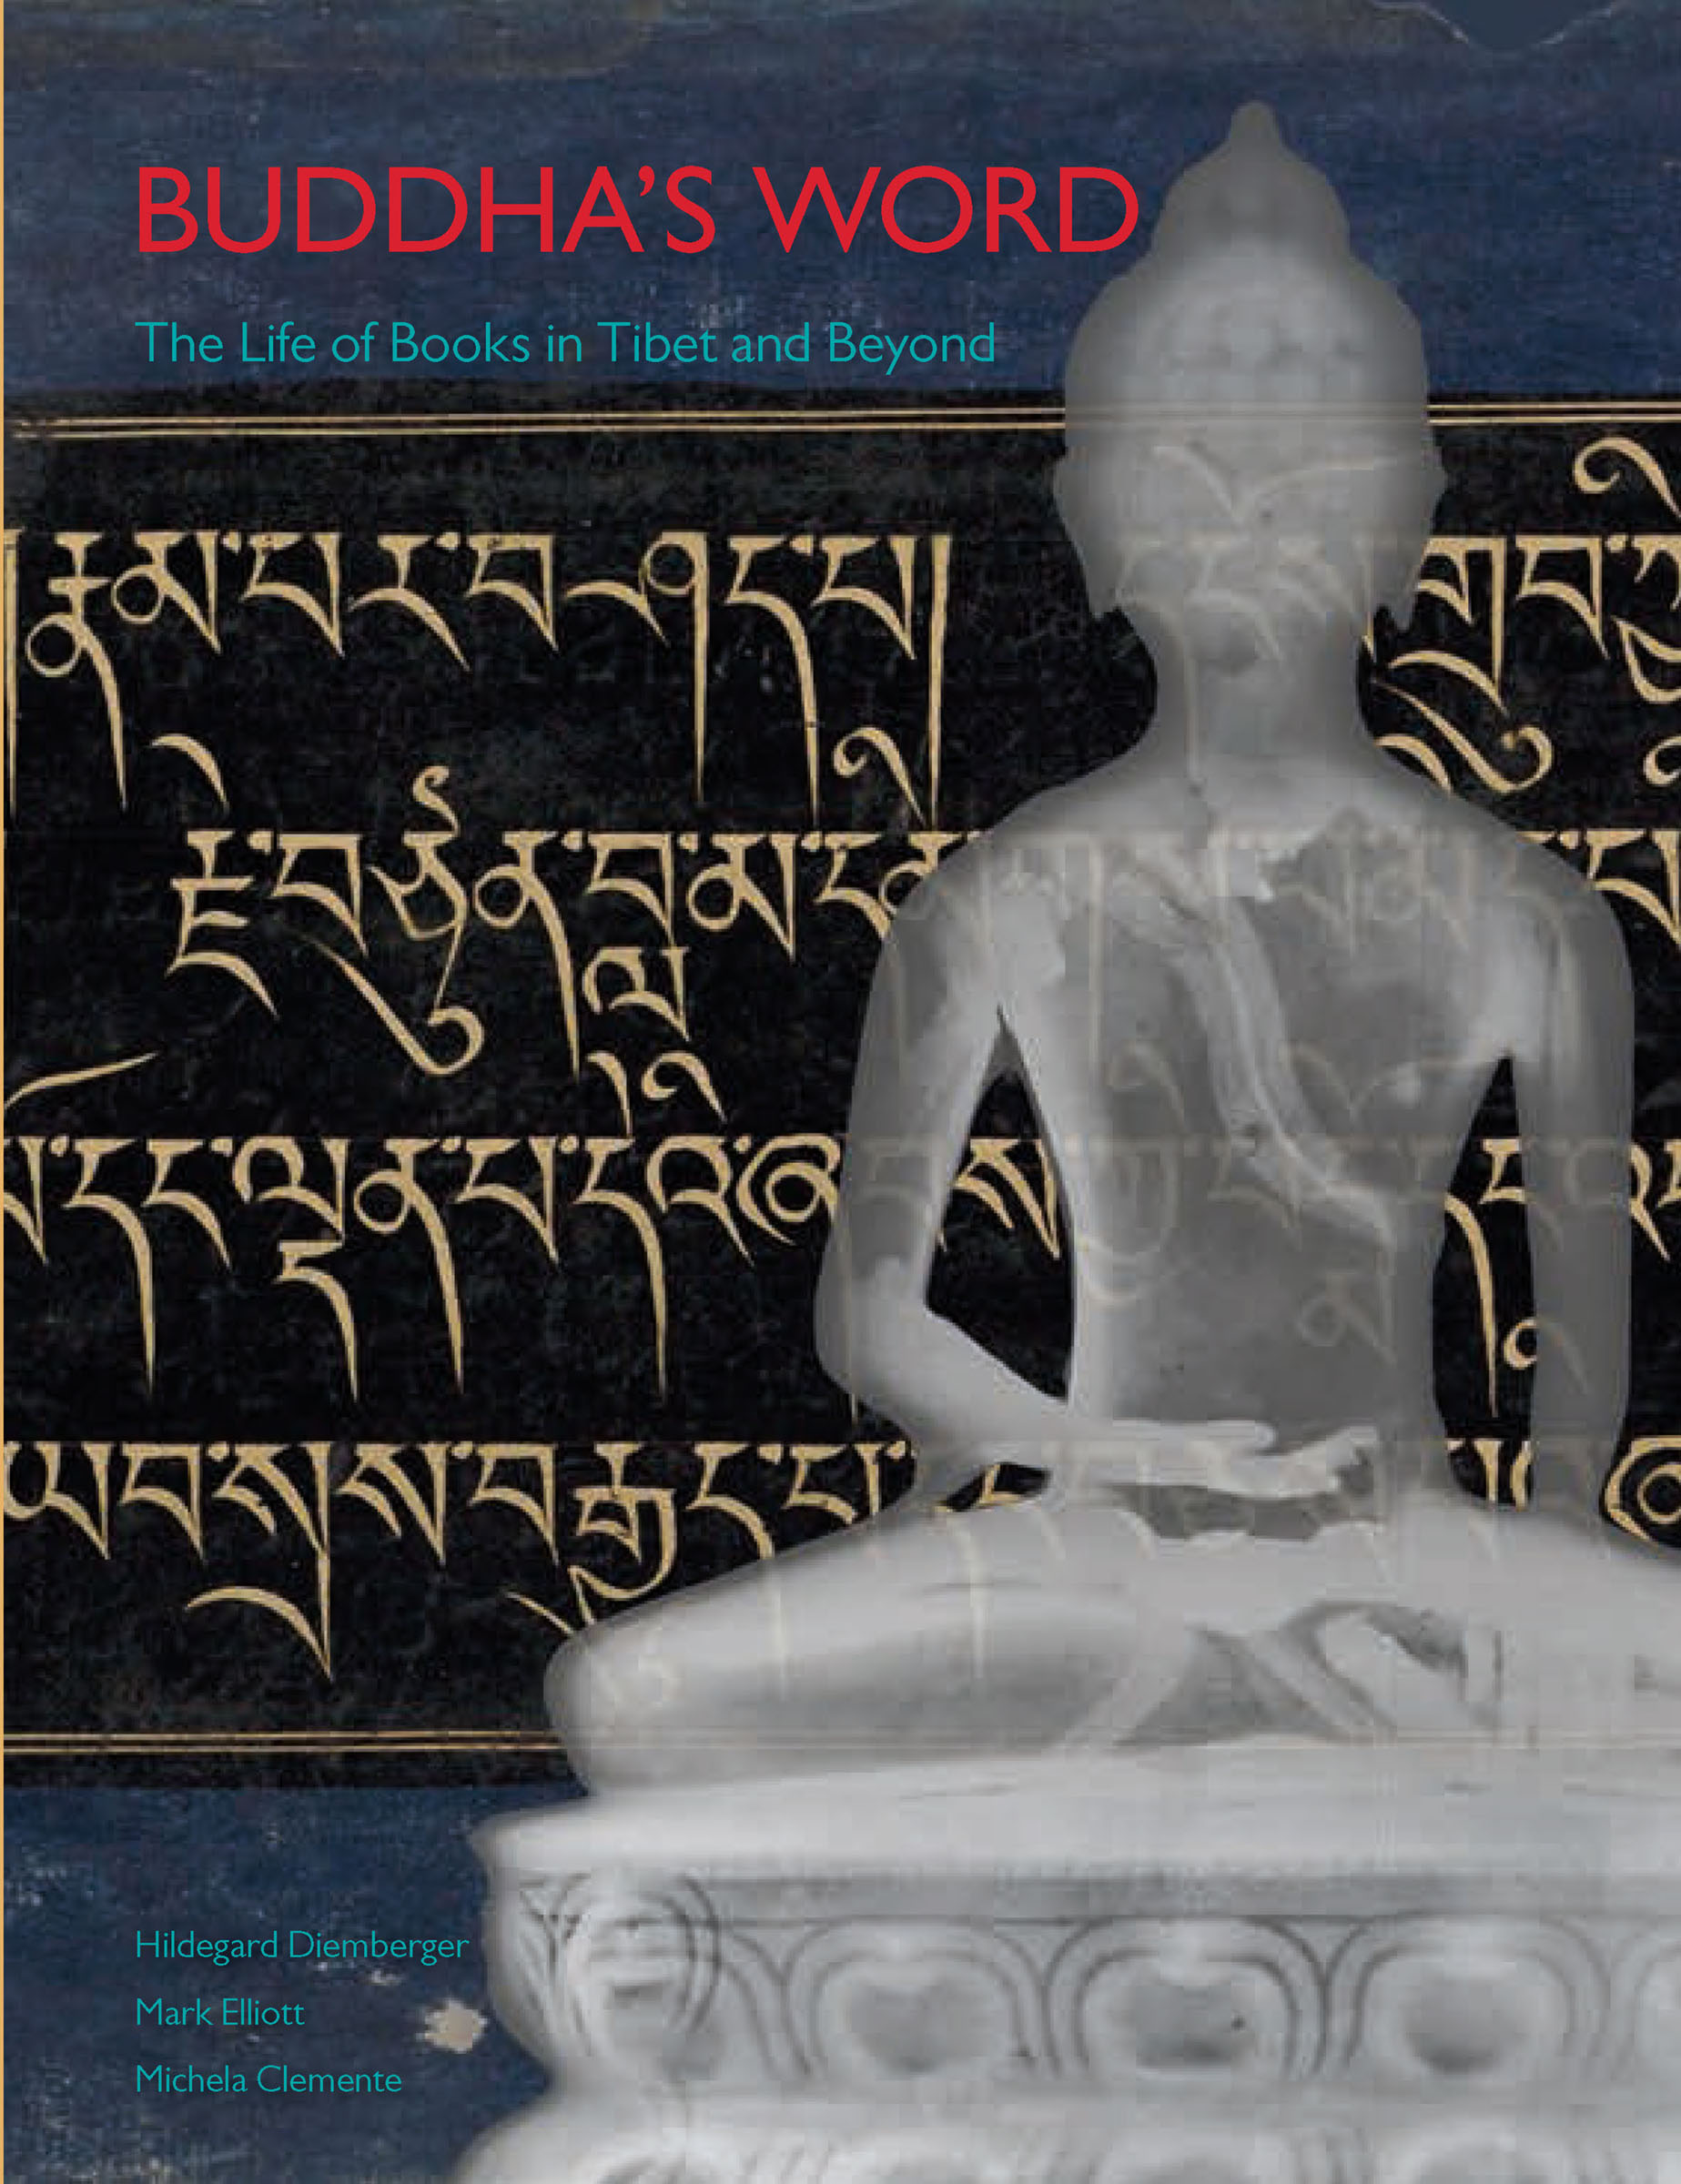 Buddha's Word catalogue cover